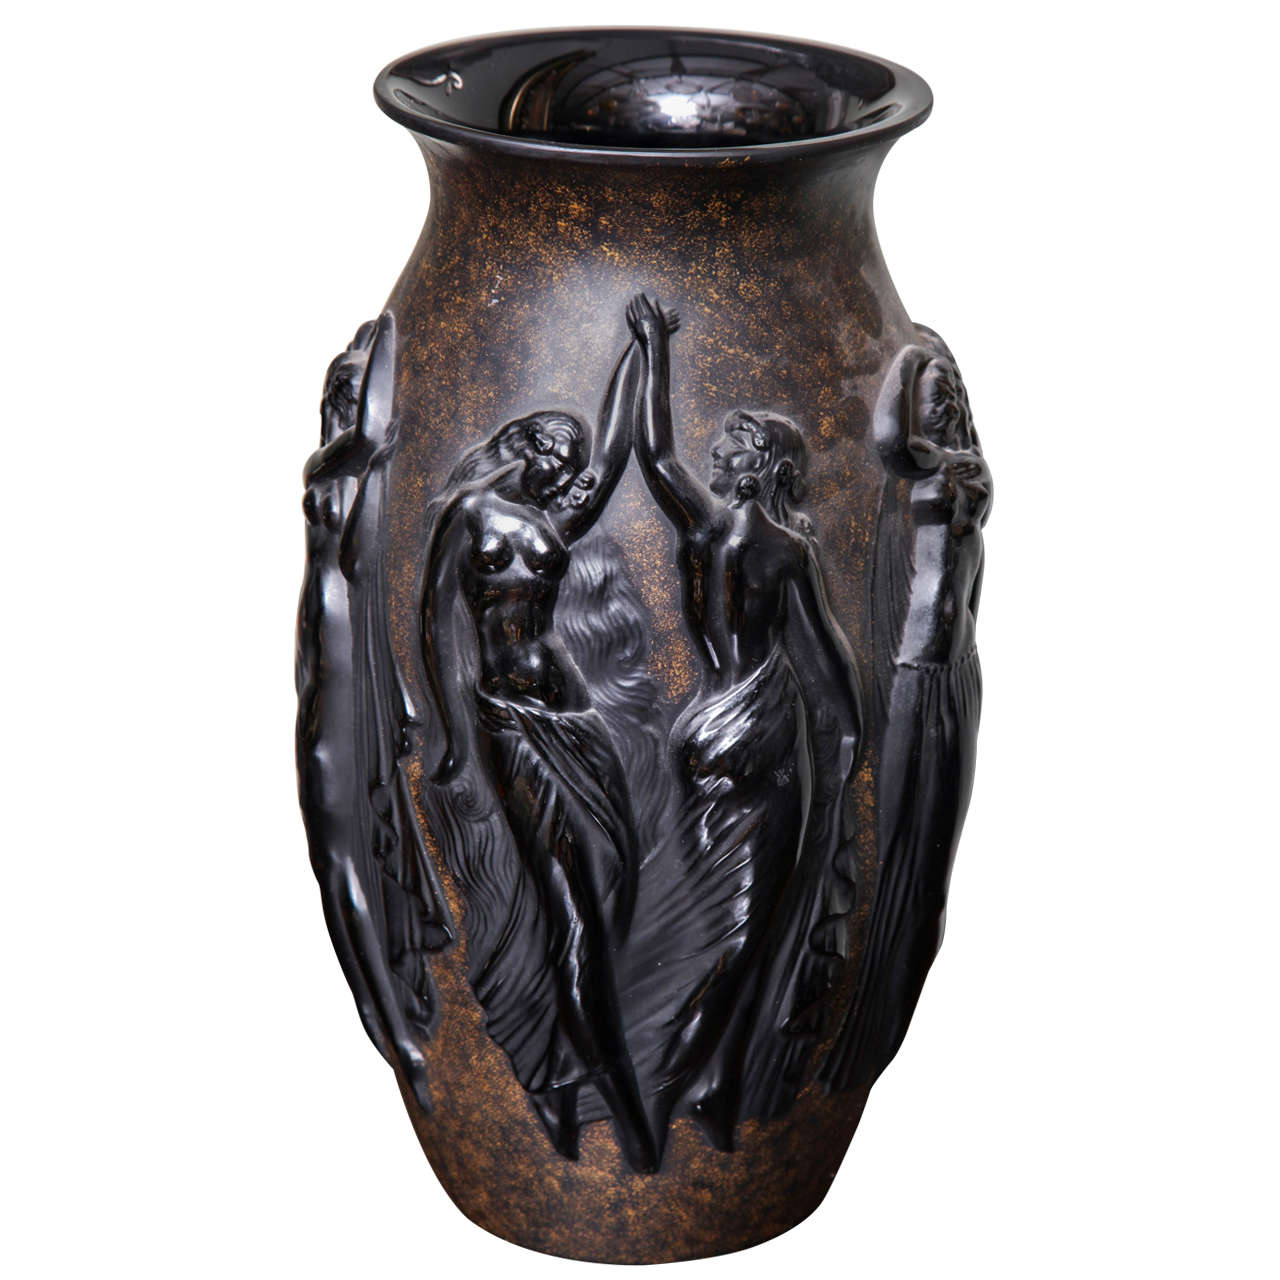 art deco vase by sabino for sale at 1stdibs. Black Bedroom Furniture Sets. Home Design Ideas